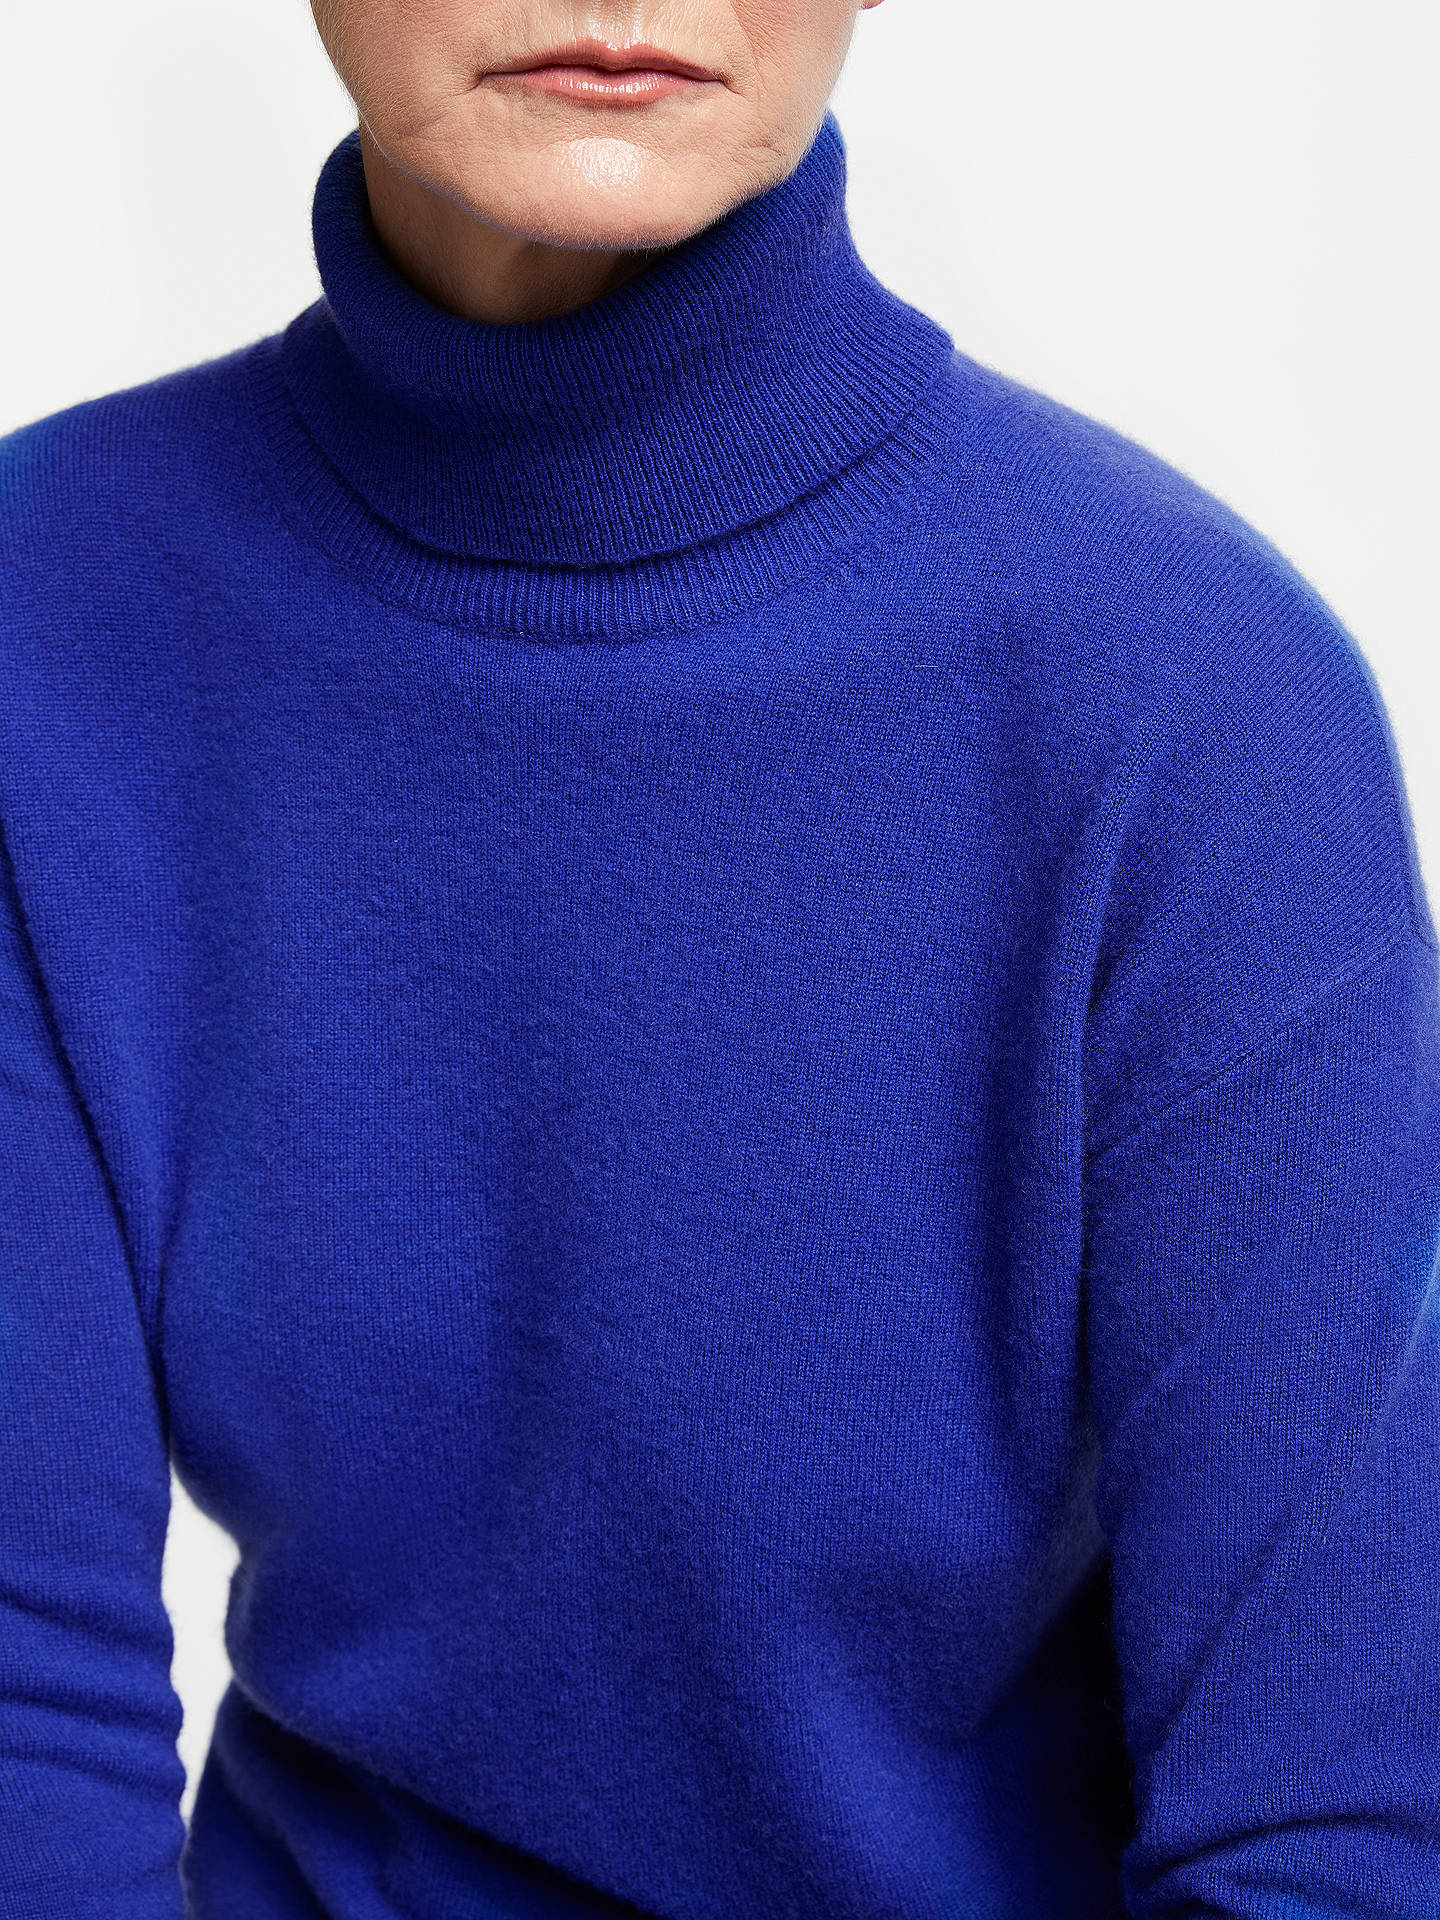 BuyJohn Lewis & Partners Cashmere Relaxed Roll Neck Sweater, Cobalt, 8 Online at johnlewis.com